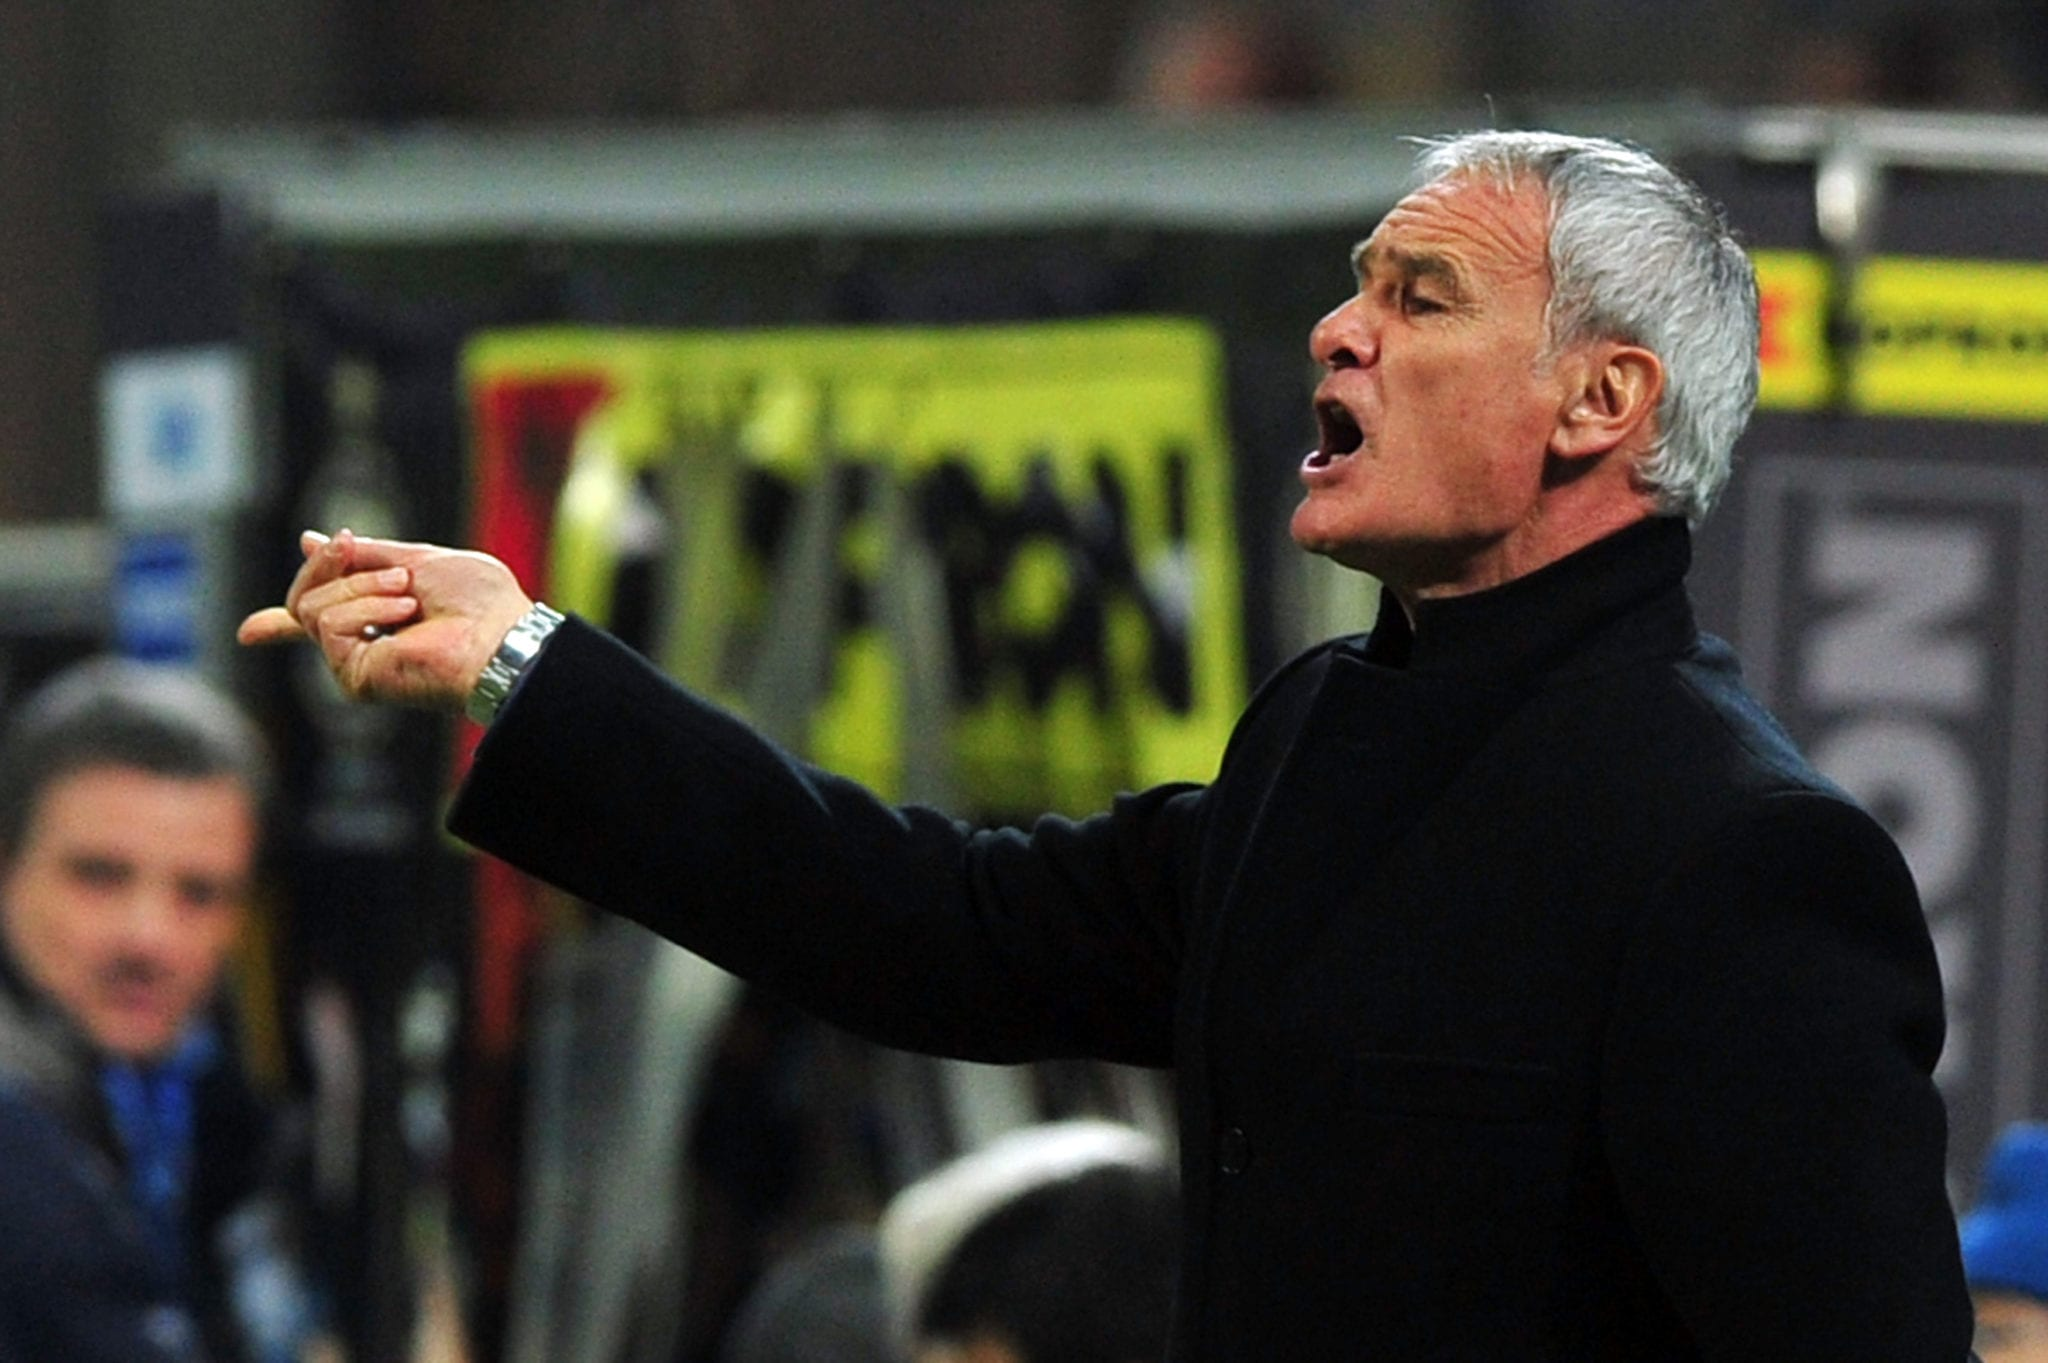 Ranieri | ©GIUSEPPE CACACE/AFP/Getty Images